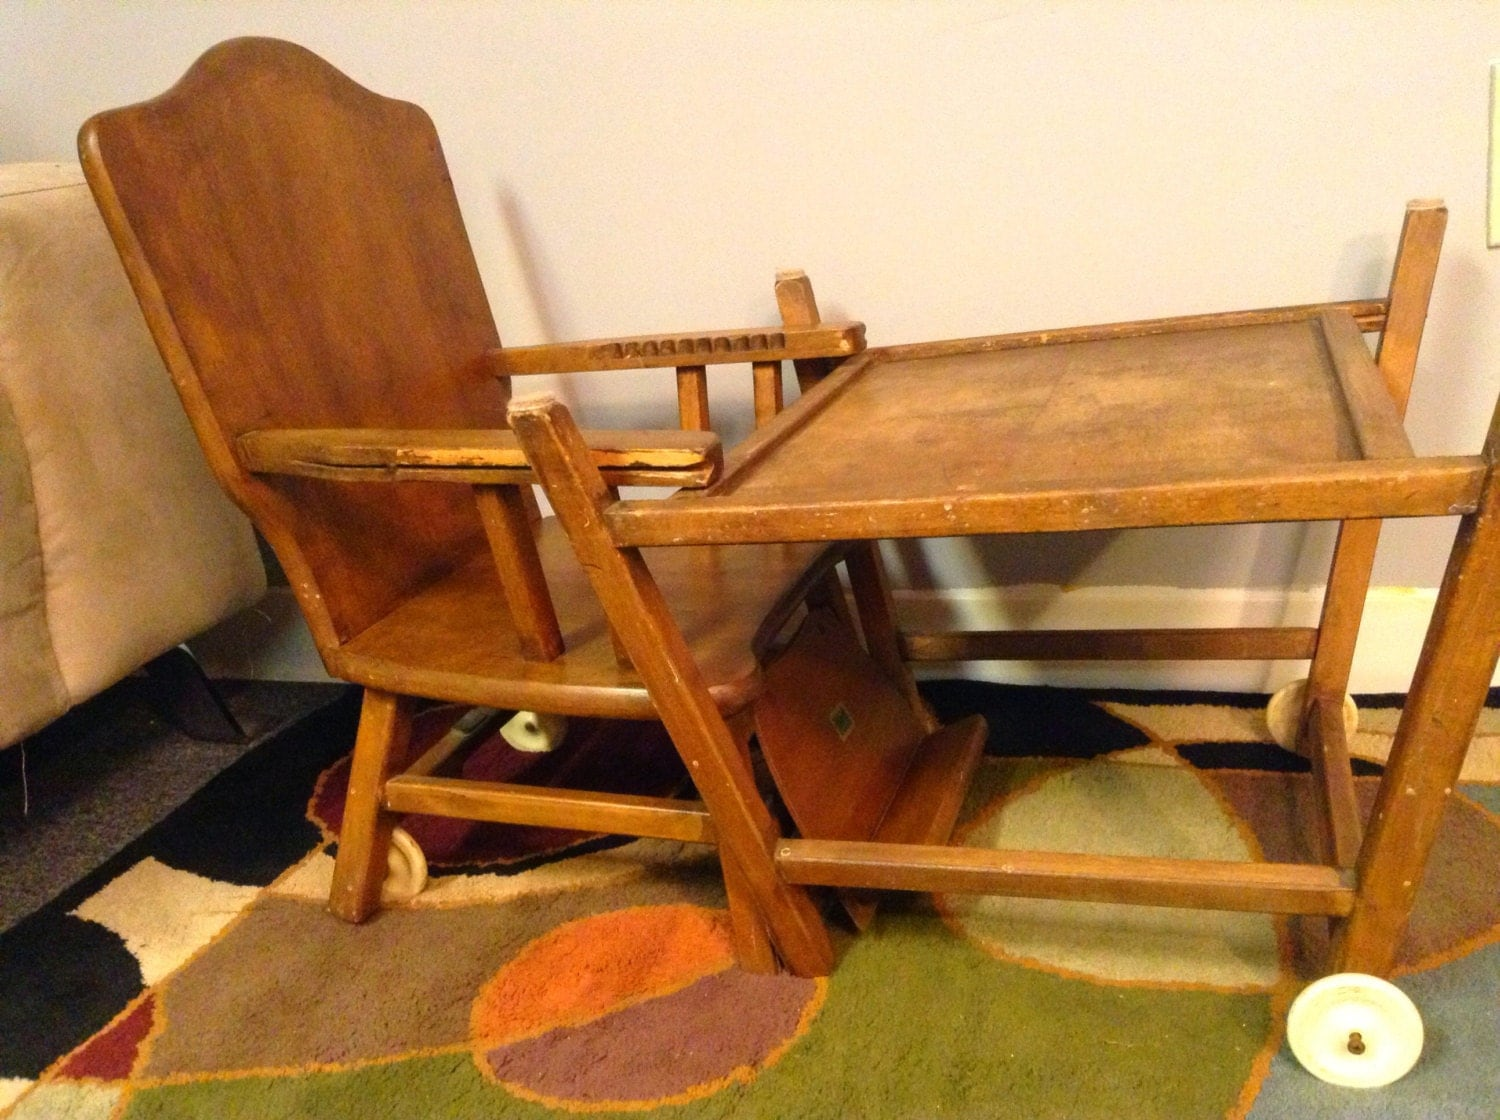 Superb img of 1950's Thayer Tops For Tots High Chair Convertible Desk by HUEisit with #C37C08 color and 1500x1120 pixels